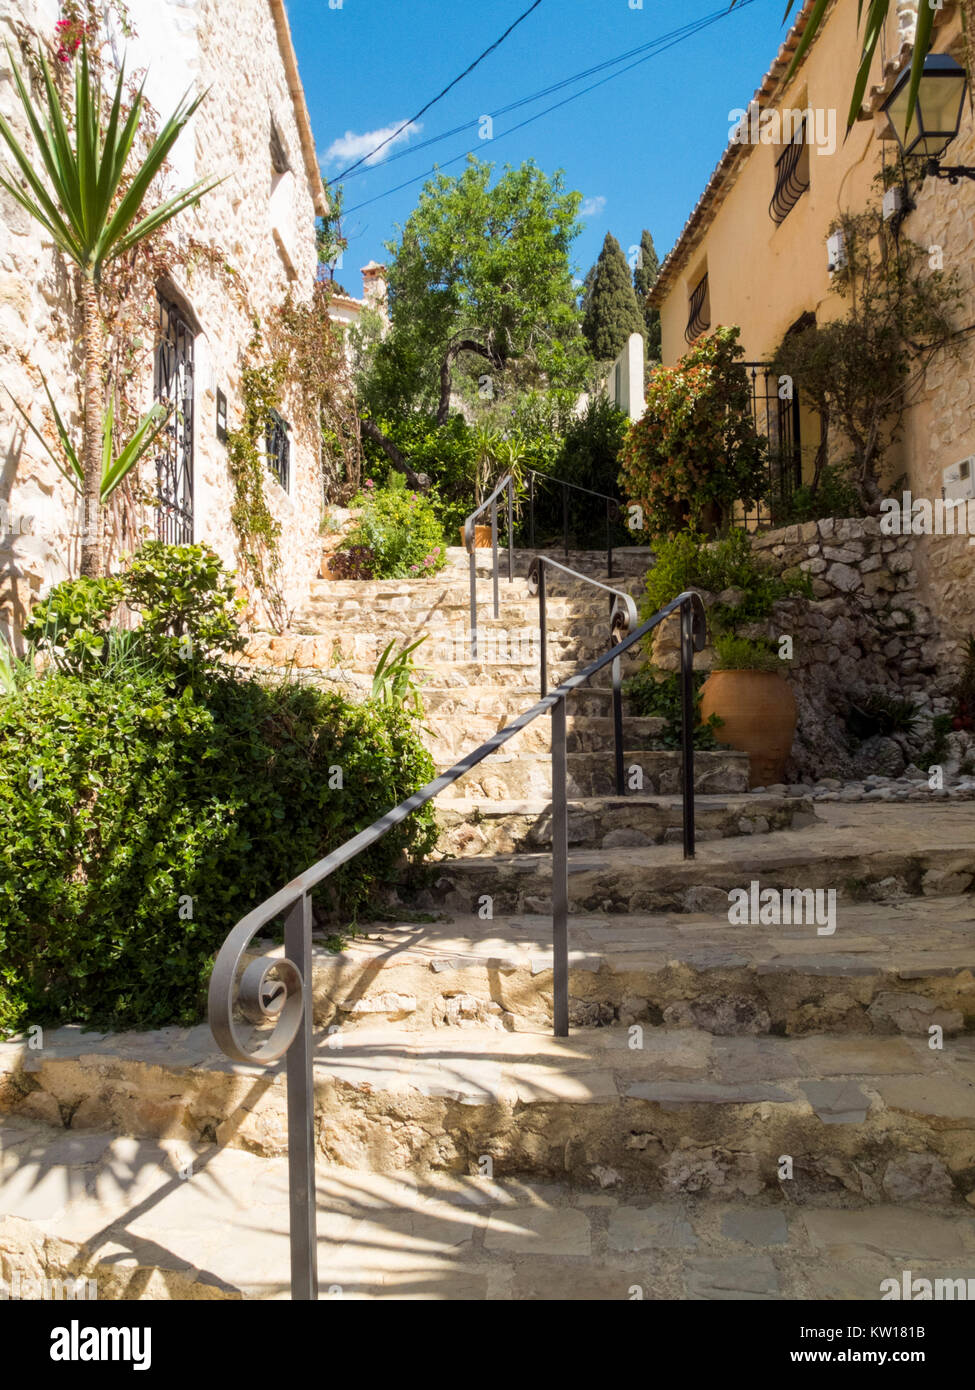 steps in alley in Lliber, Jalon Valley, Alicante, Spain - Stock Image